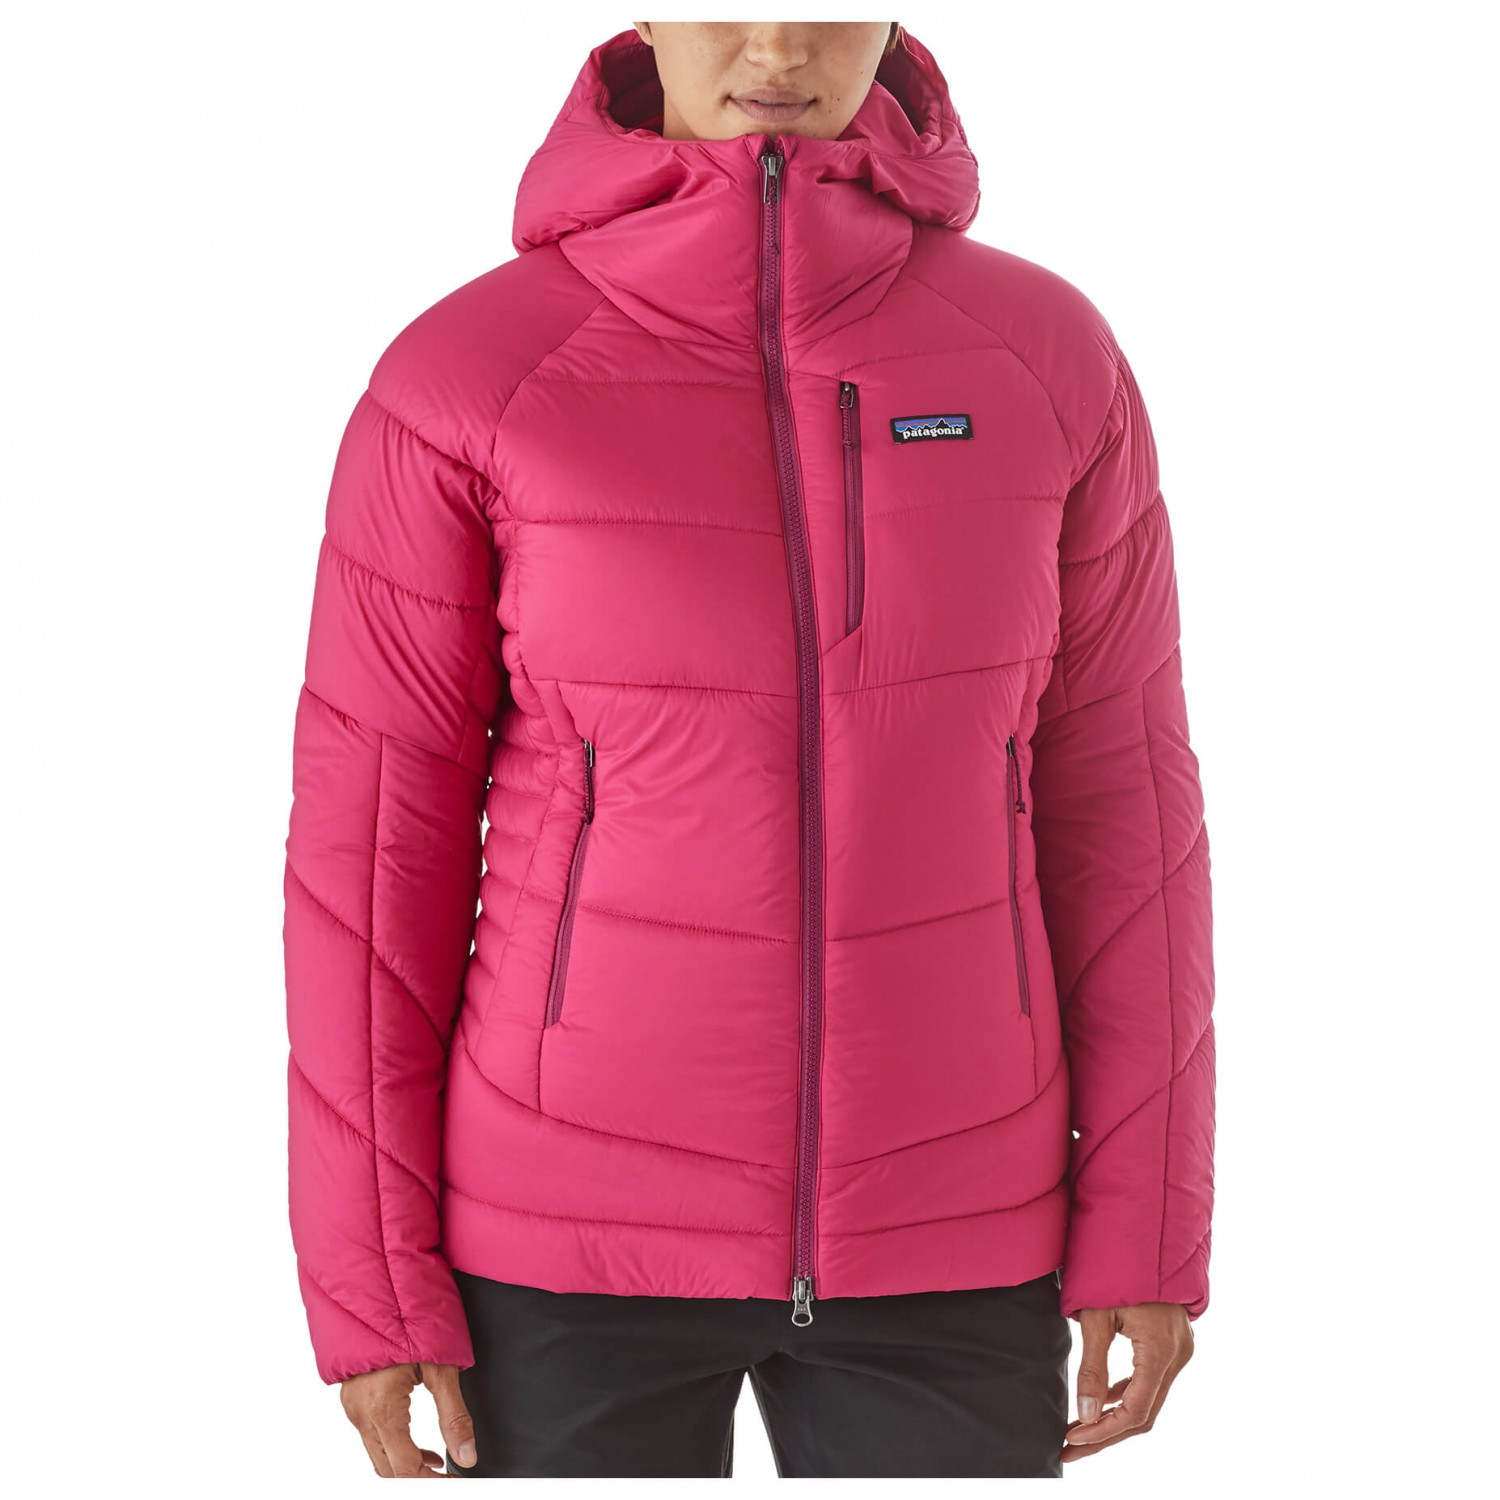 7c010fed8 Patagonia Hyper Puff Parka - Synthetic jacket Women's   Buy online ...